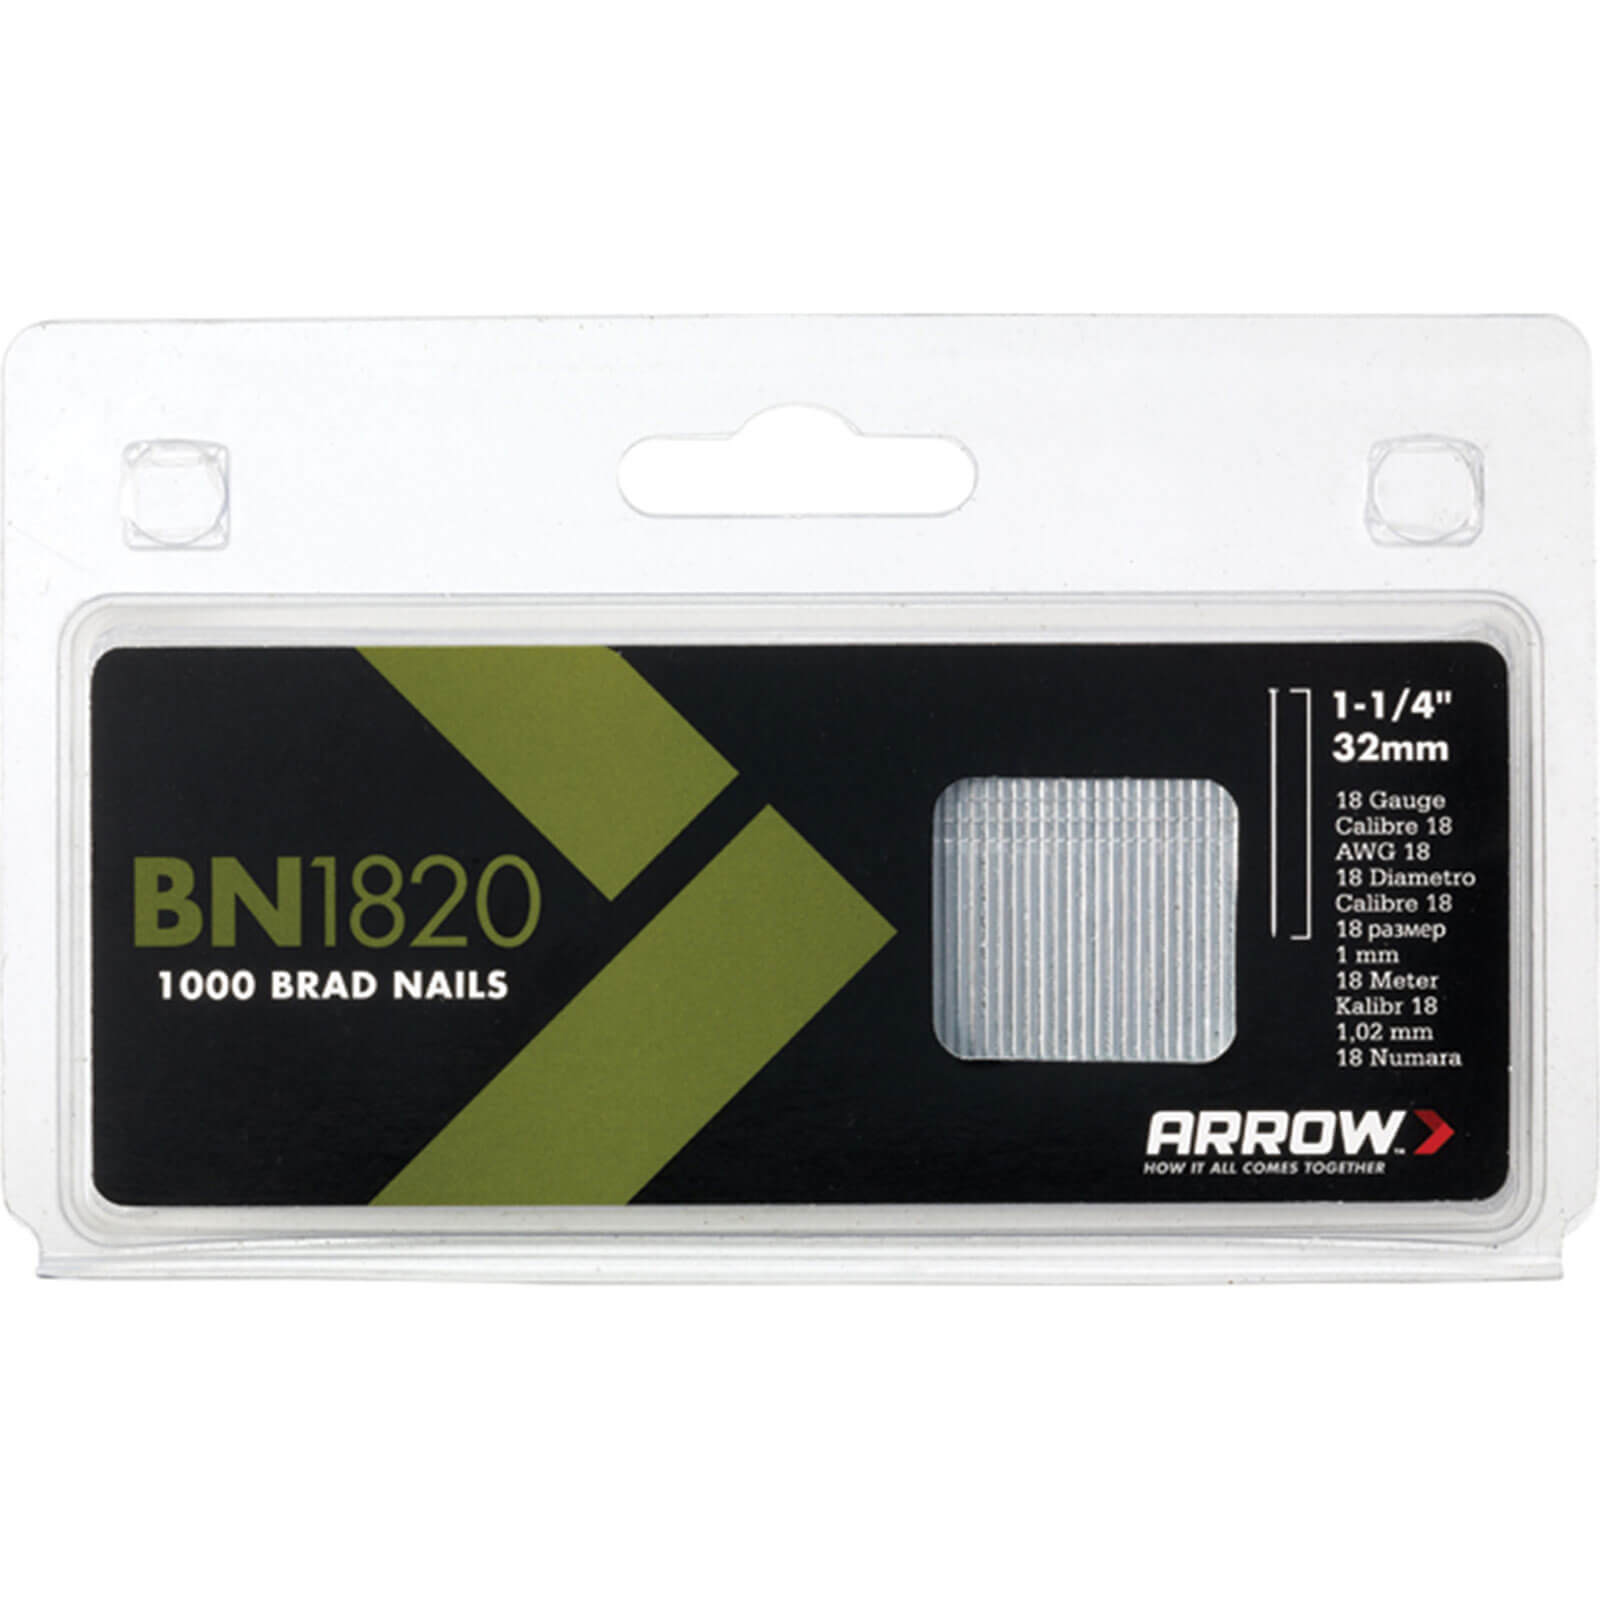 Image of Arrow 18 Gauge Brad Nails 20mm Pack of 1000